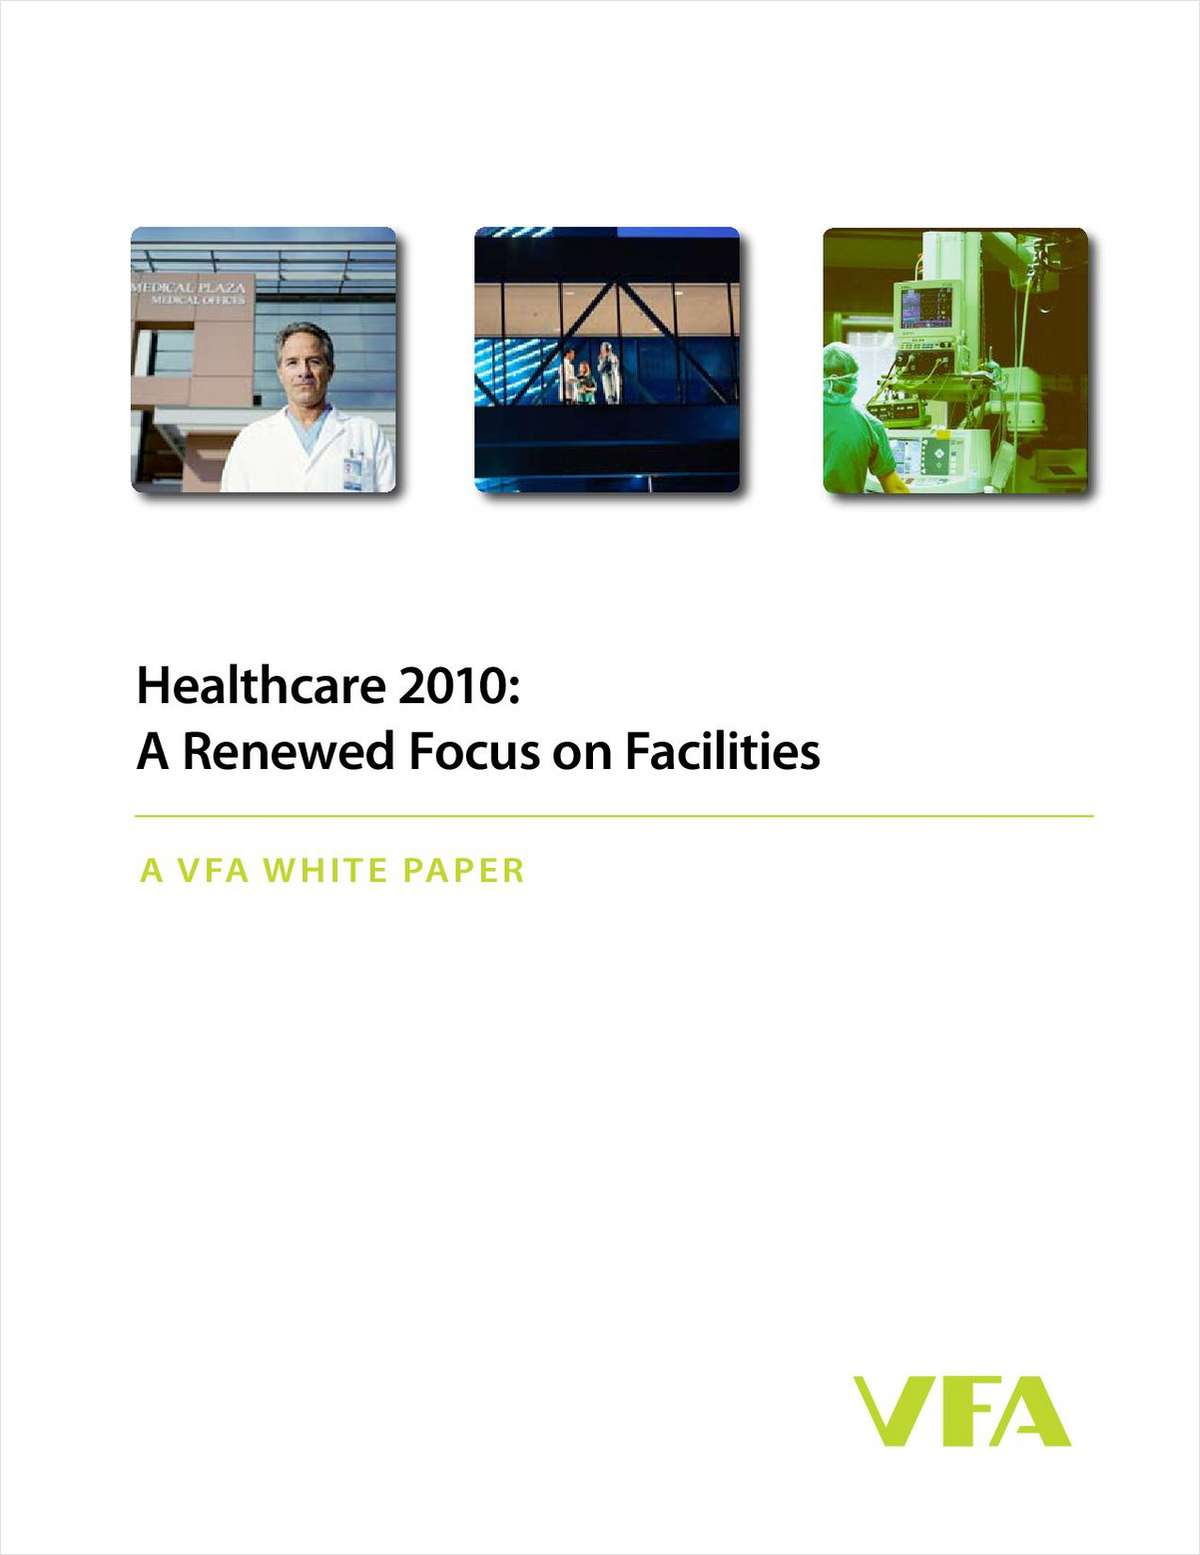 Healthcare 2010: A Renewed Focus on Facilities